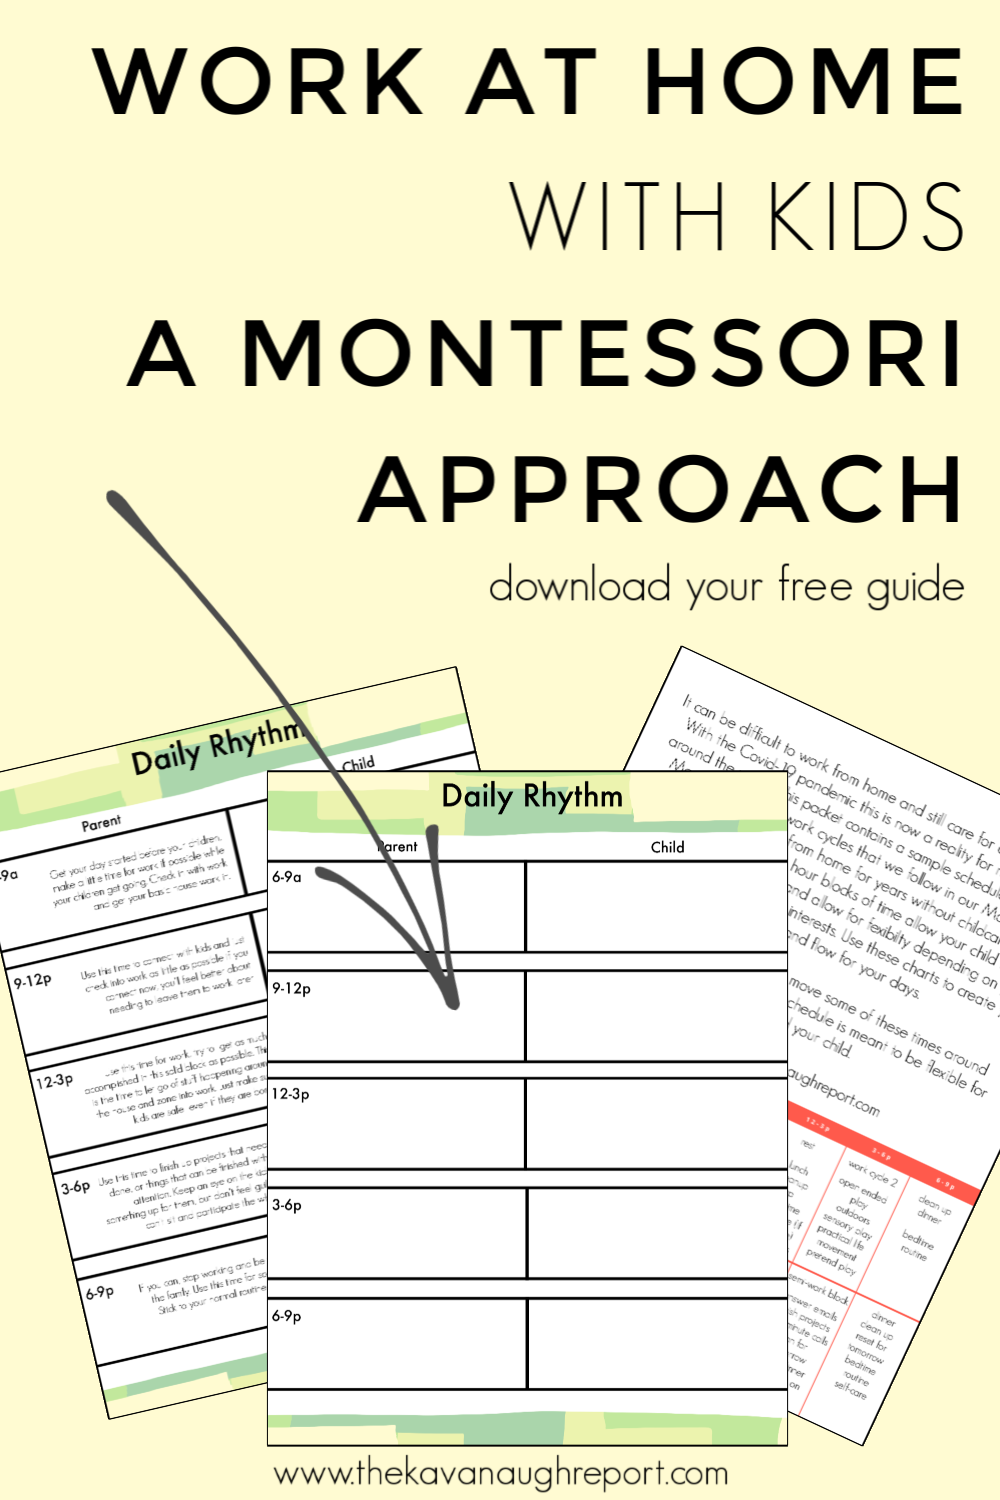 Working at home with kids can be difficult when it's a sudden adjustment. Here is a free Montessori guide for parents working at home with kids.